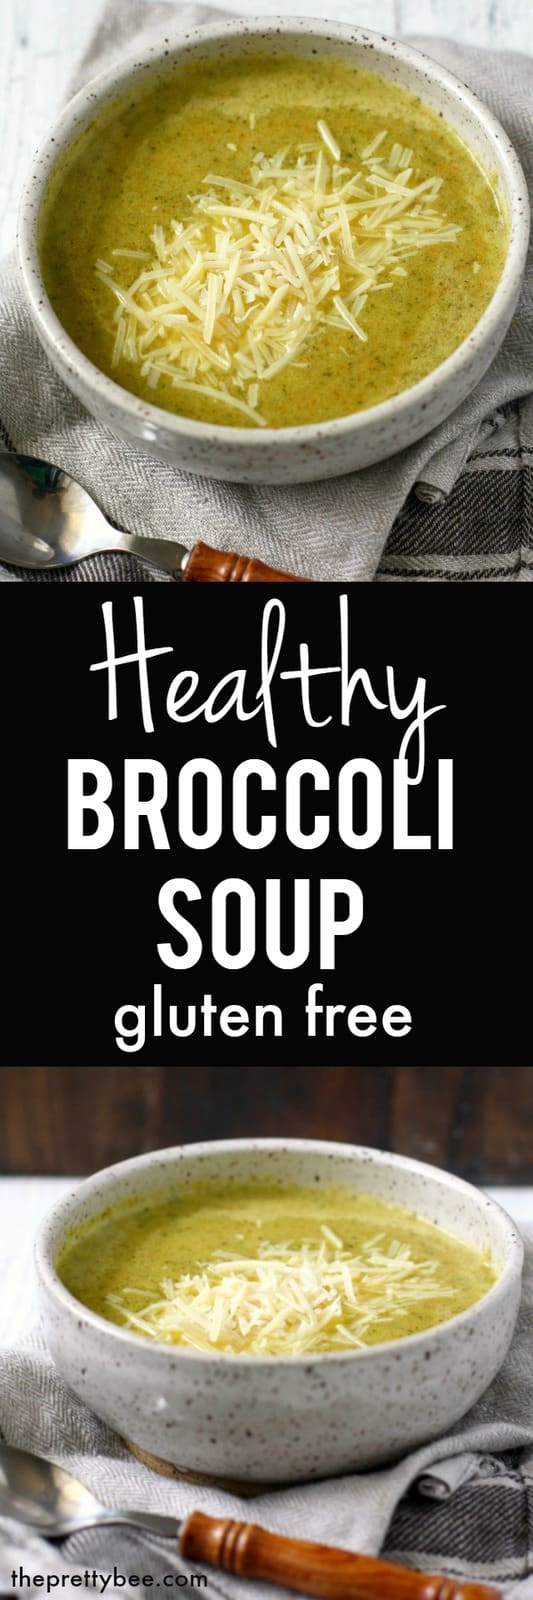 quick and easy broccoli soup recipe